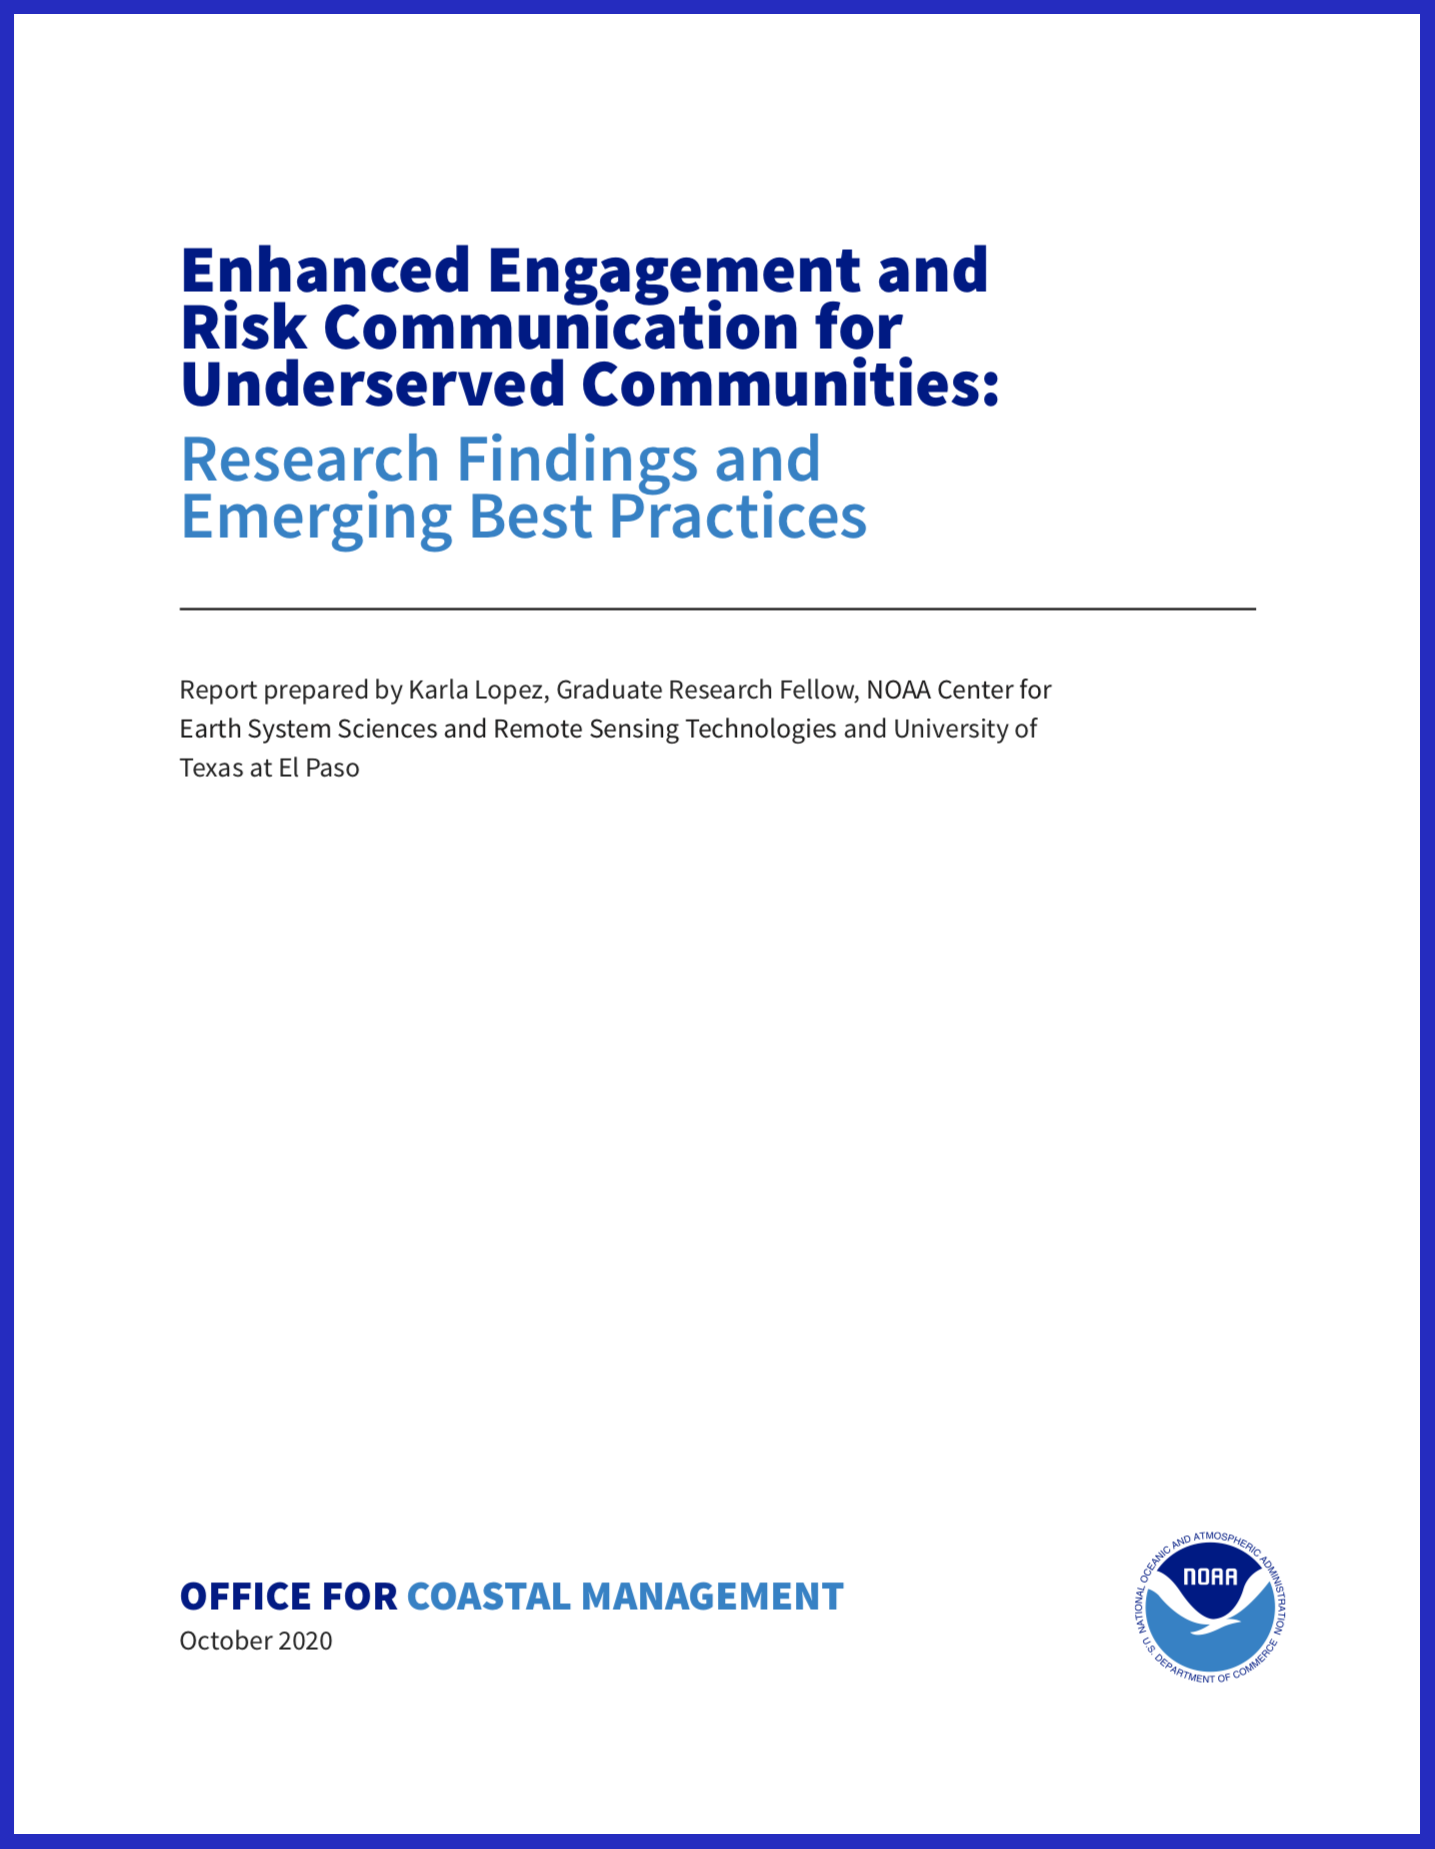 """""""Enhanced Engagement and Risk Communication for Underserved Communities: Research Findings and Emerging Best Practices"""""""